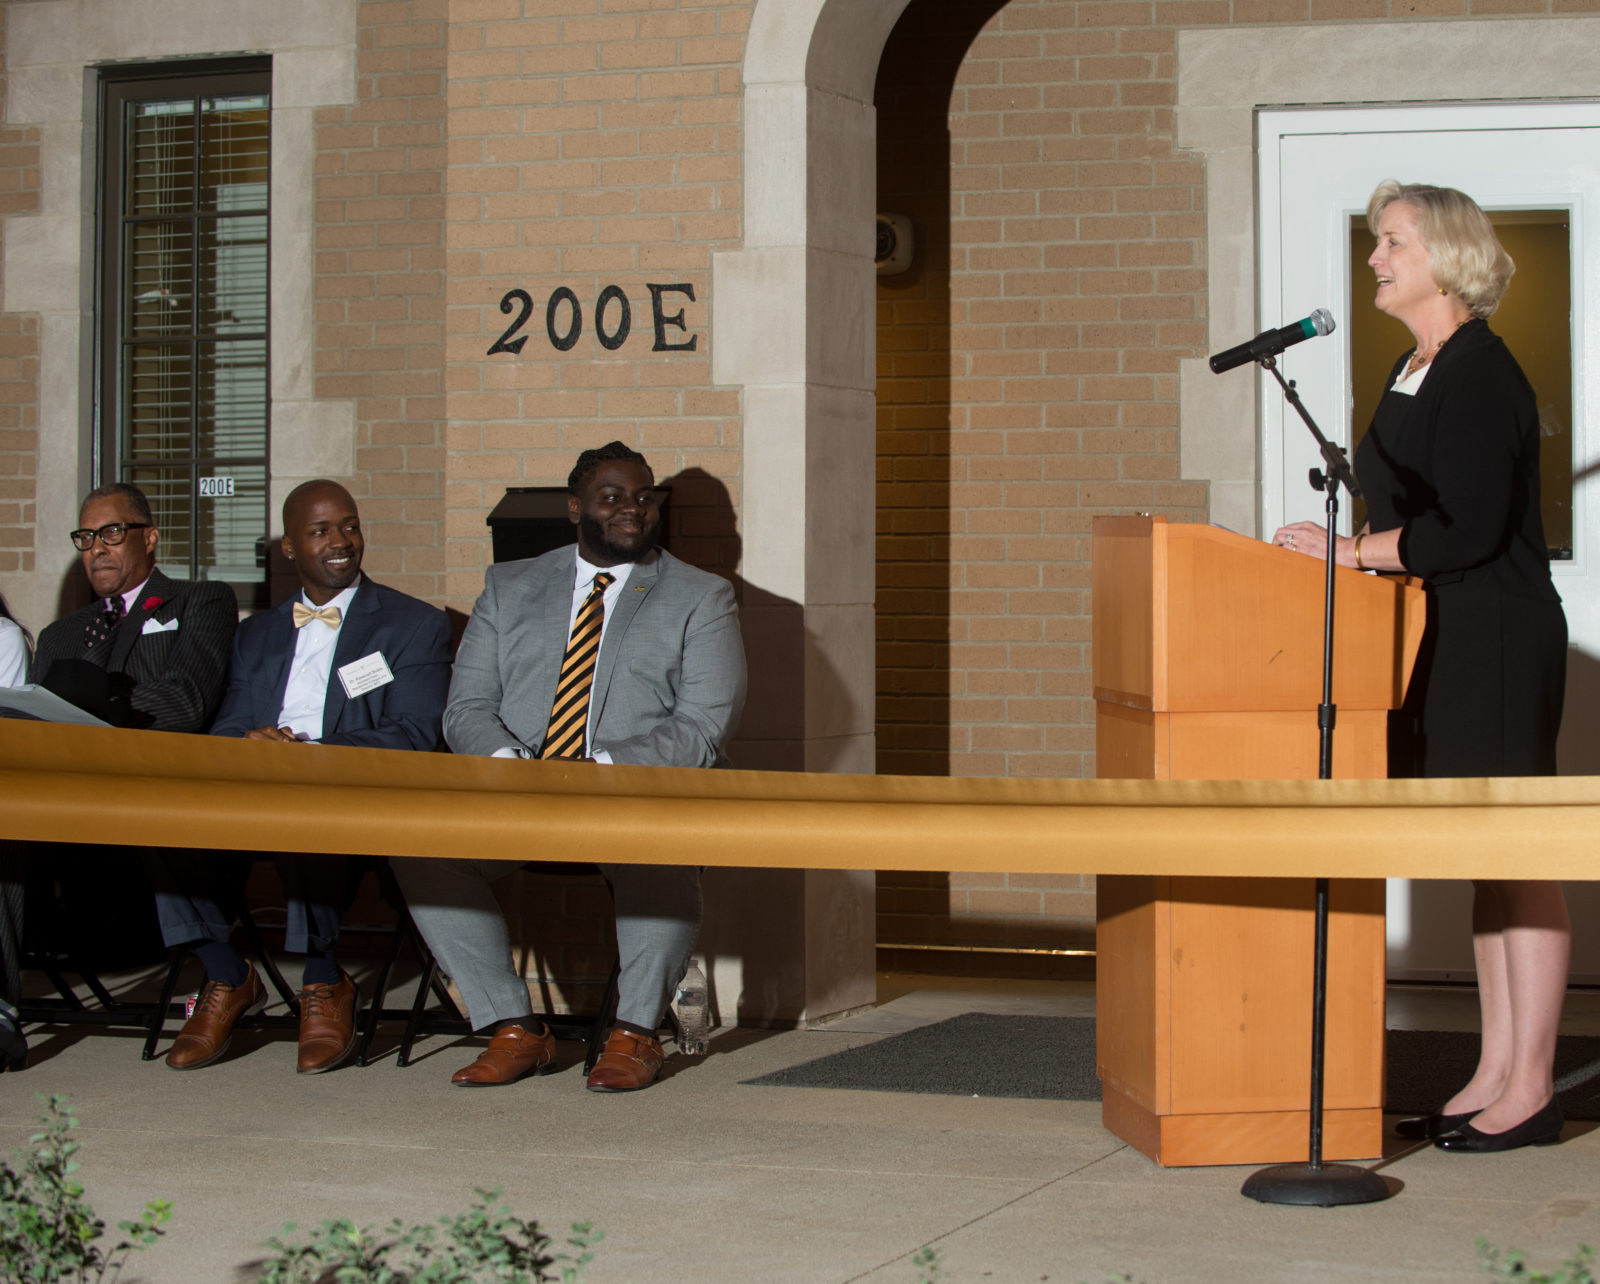 Interim Chancellor and Provost Susan R. Wente giving remarks at the new Pan-Hellenic Council House house ribbon-cutting at Vanderbilt University on Oct. 18, 2019. (Price Chambers for Vanderbilt University)